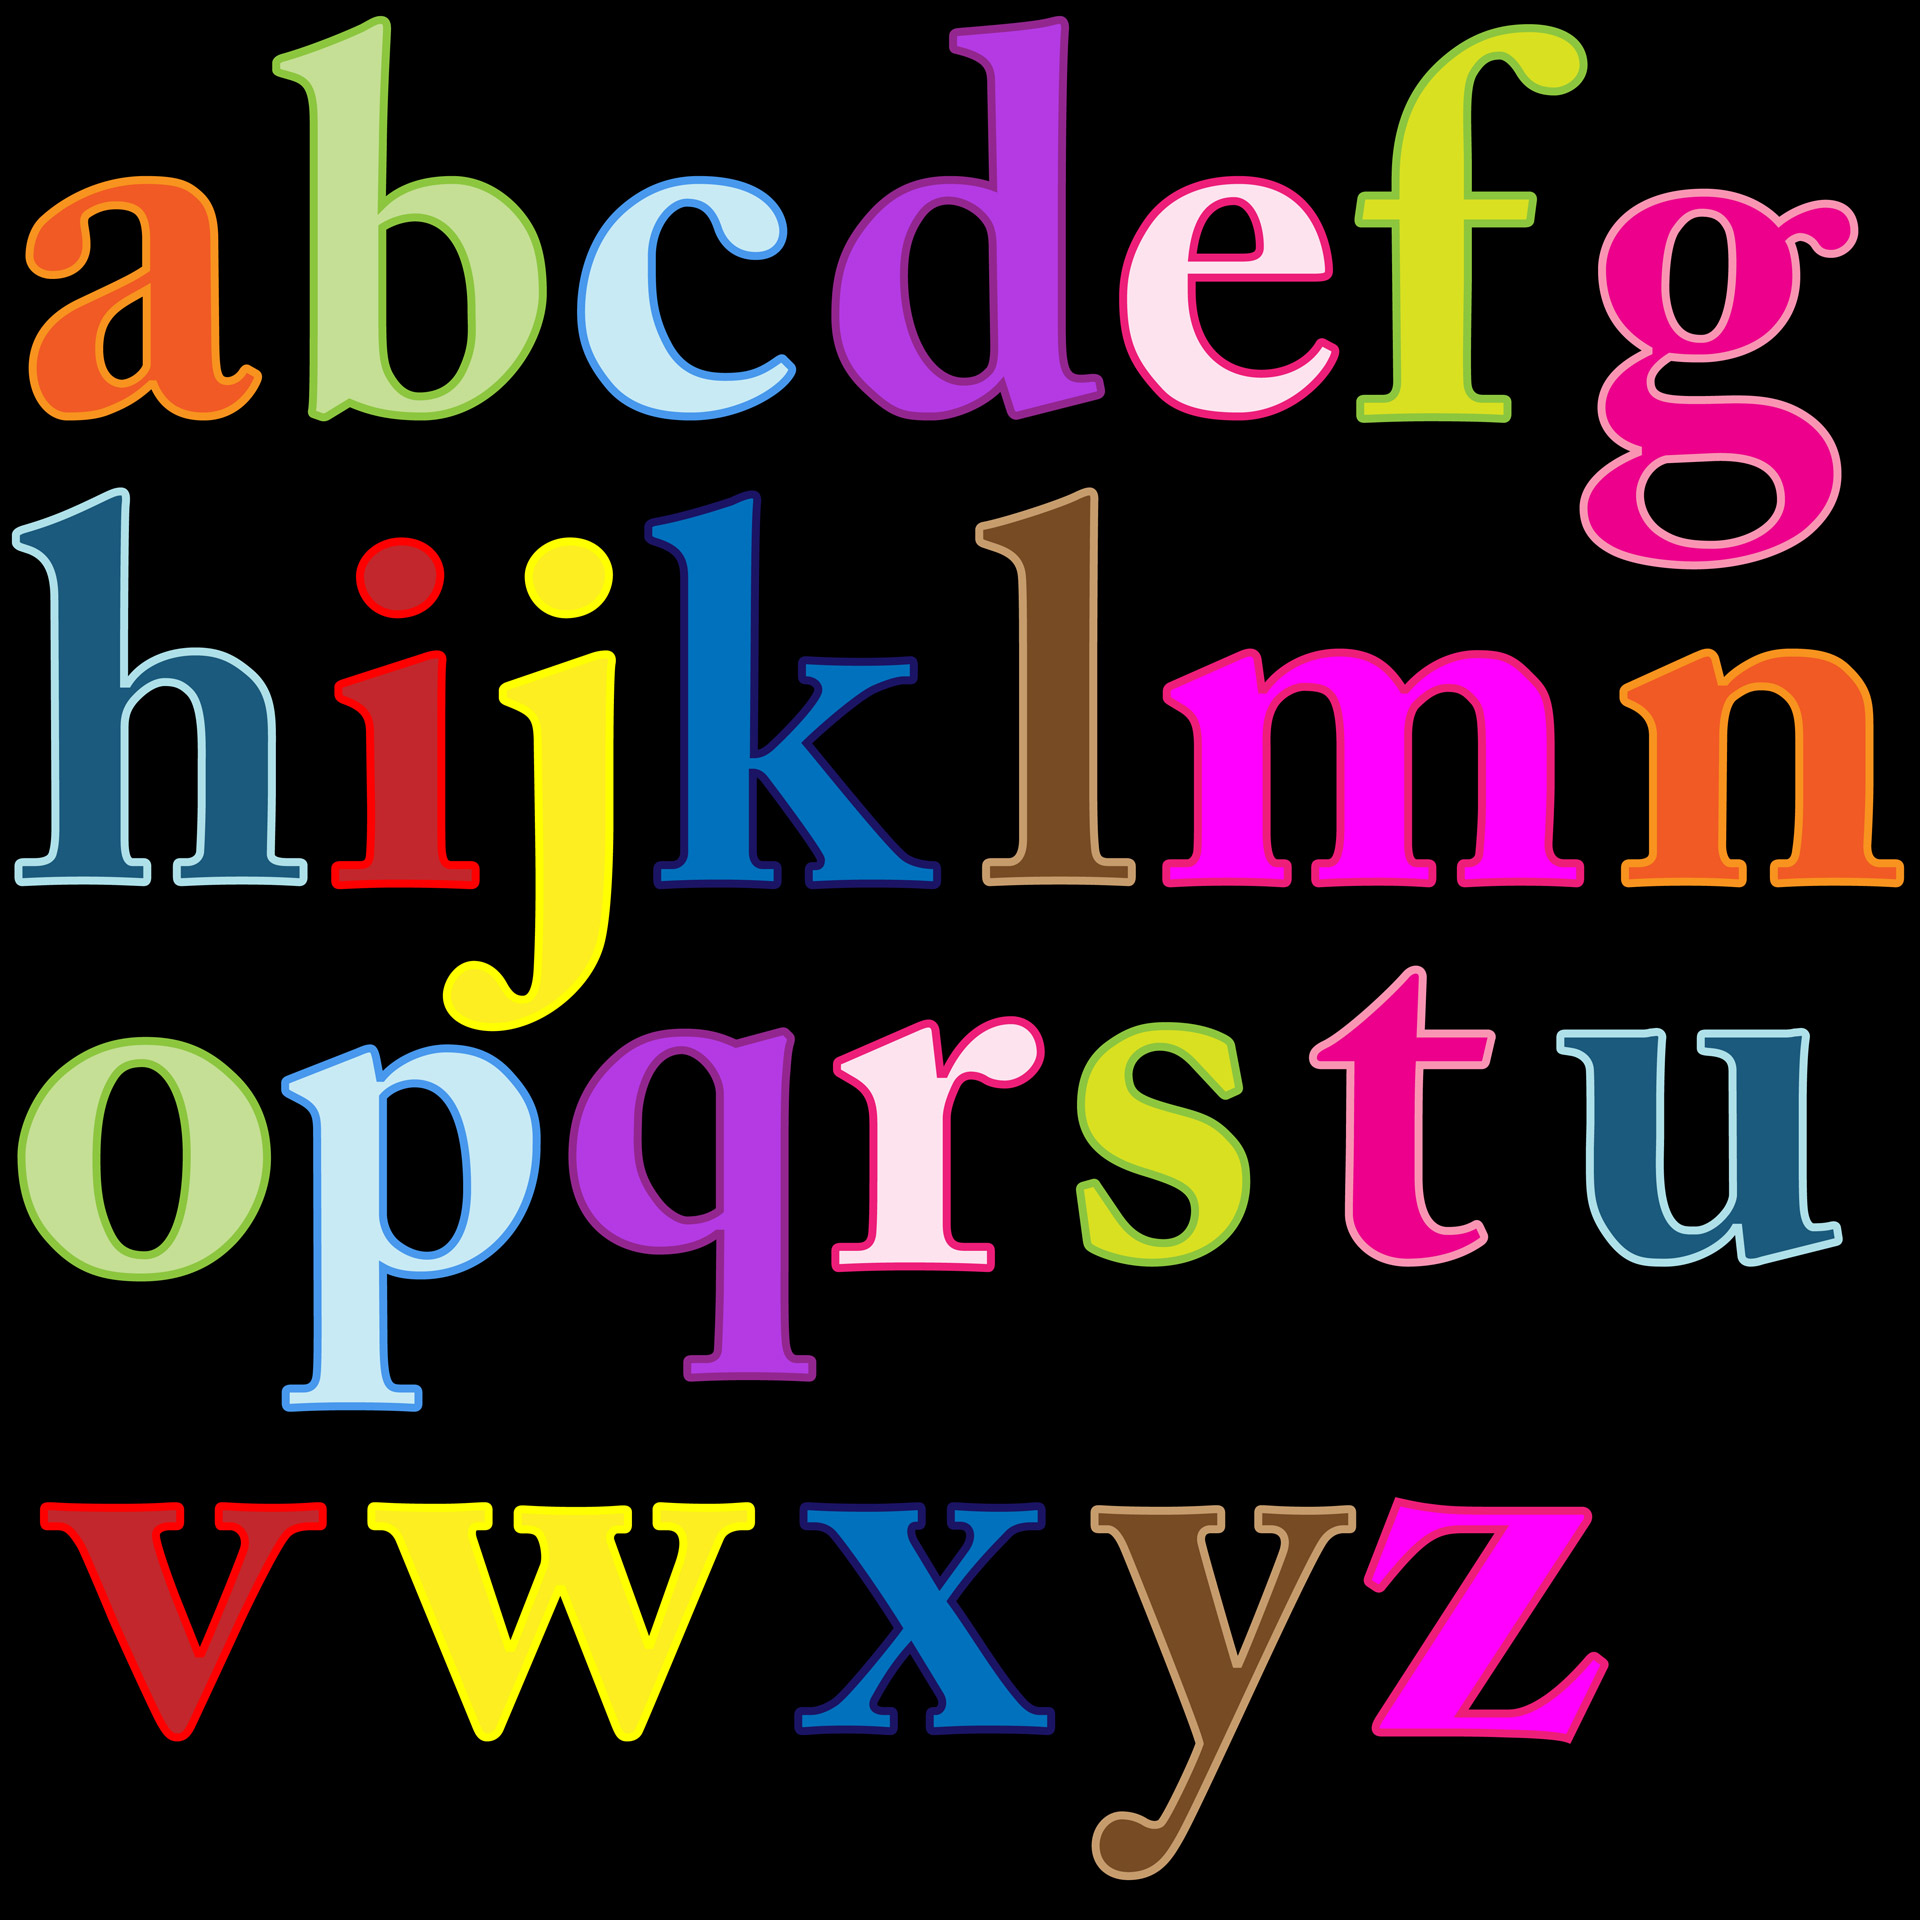 Letter s clipart colored banner royalty free stock Alphabet Letters Clip-art Free Stock Photo - Public Domain Pictures banner royalty free stock